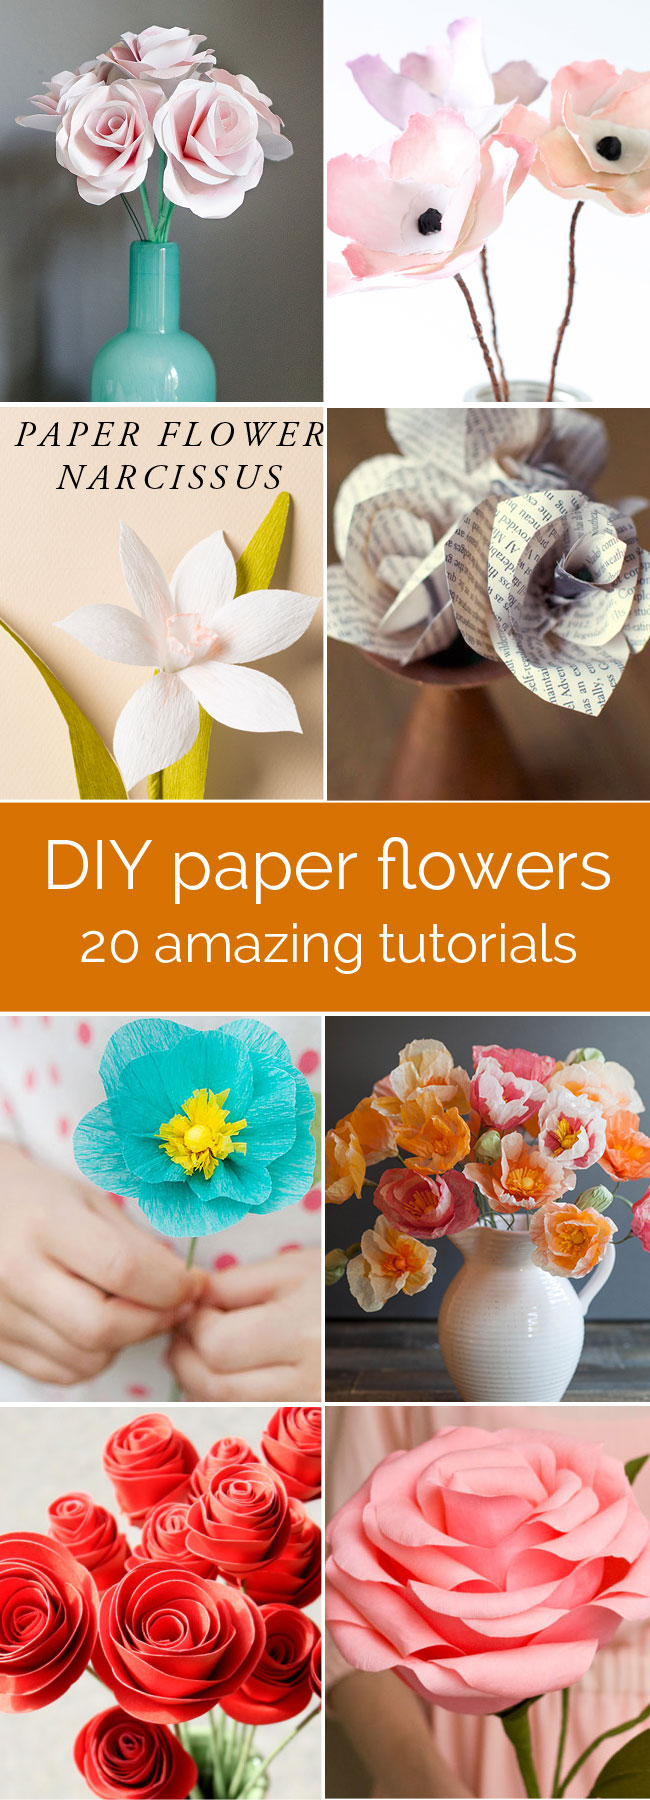 20 Diy Paper Flower Tutorials How To Make Paper Flowers